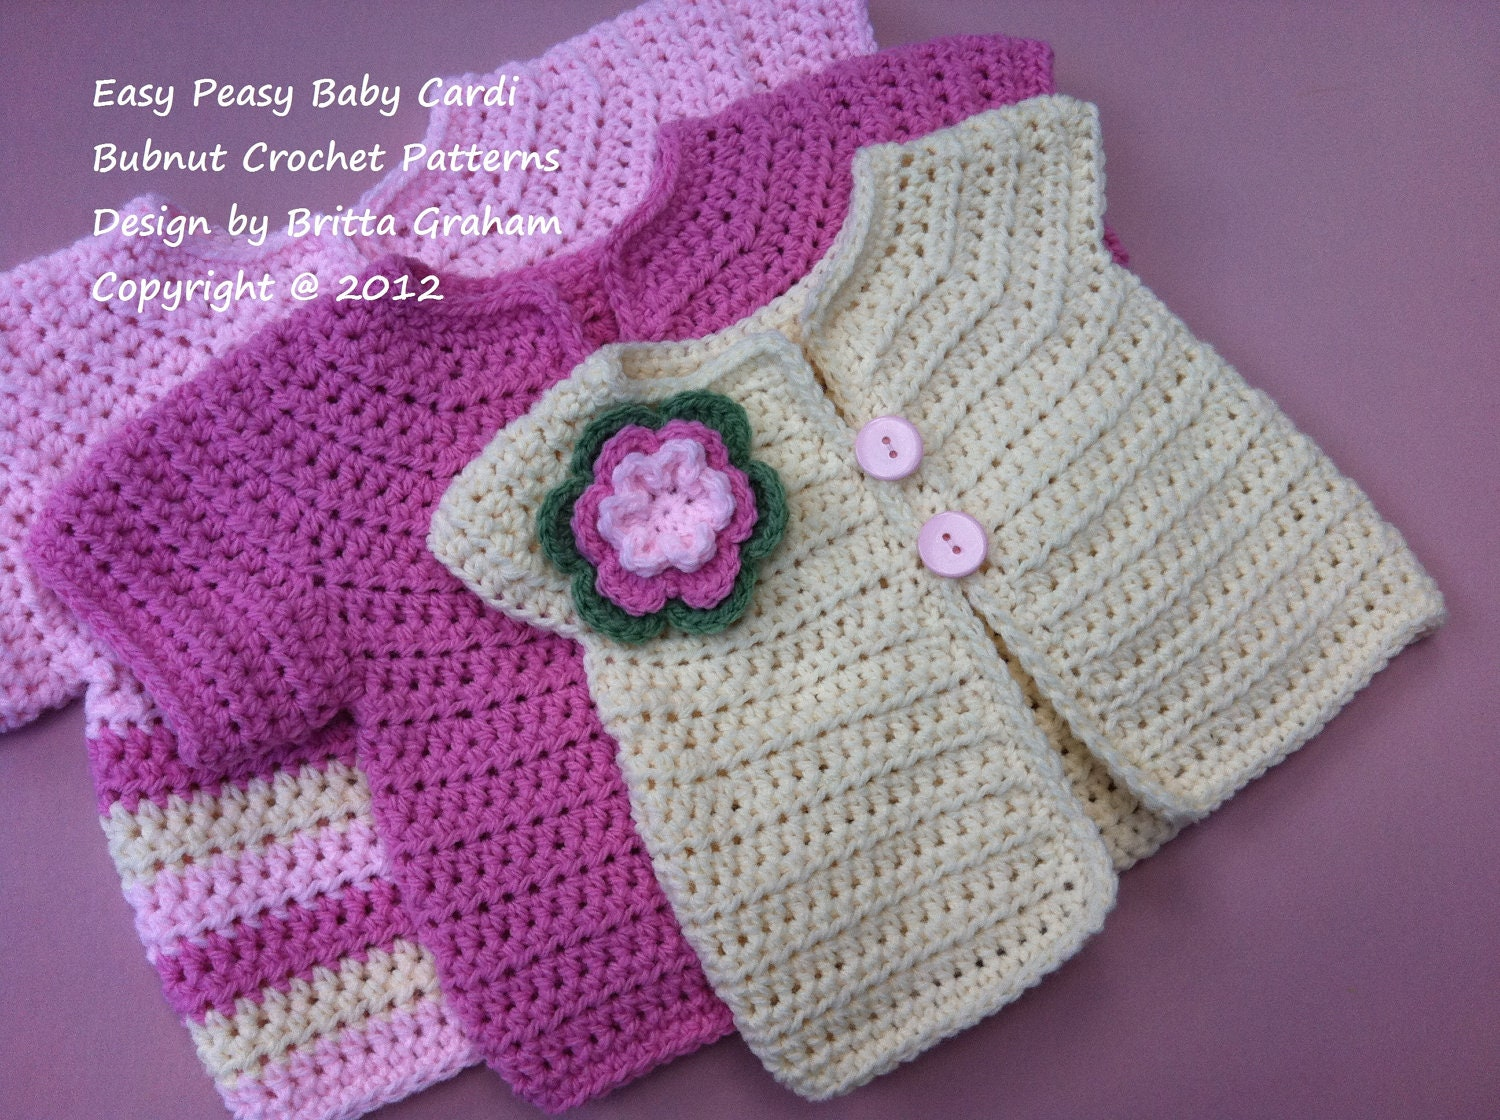 Free Crochet Patterns For Easy Baby Sweaters : Crochet Baby Sweater Patterns Easy Free www.galleryhip ...